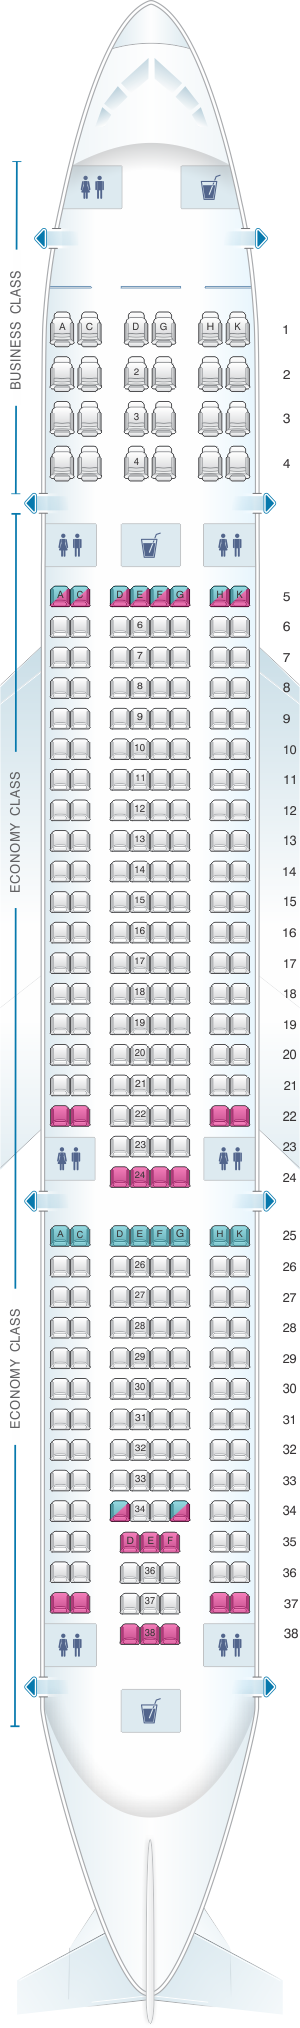 Seat map for Vietnam Airlines Airbus A330 200 280PAX V1